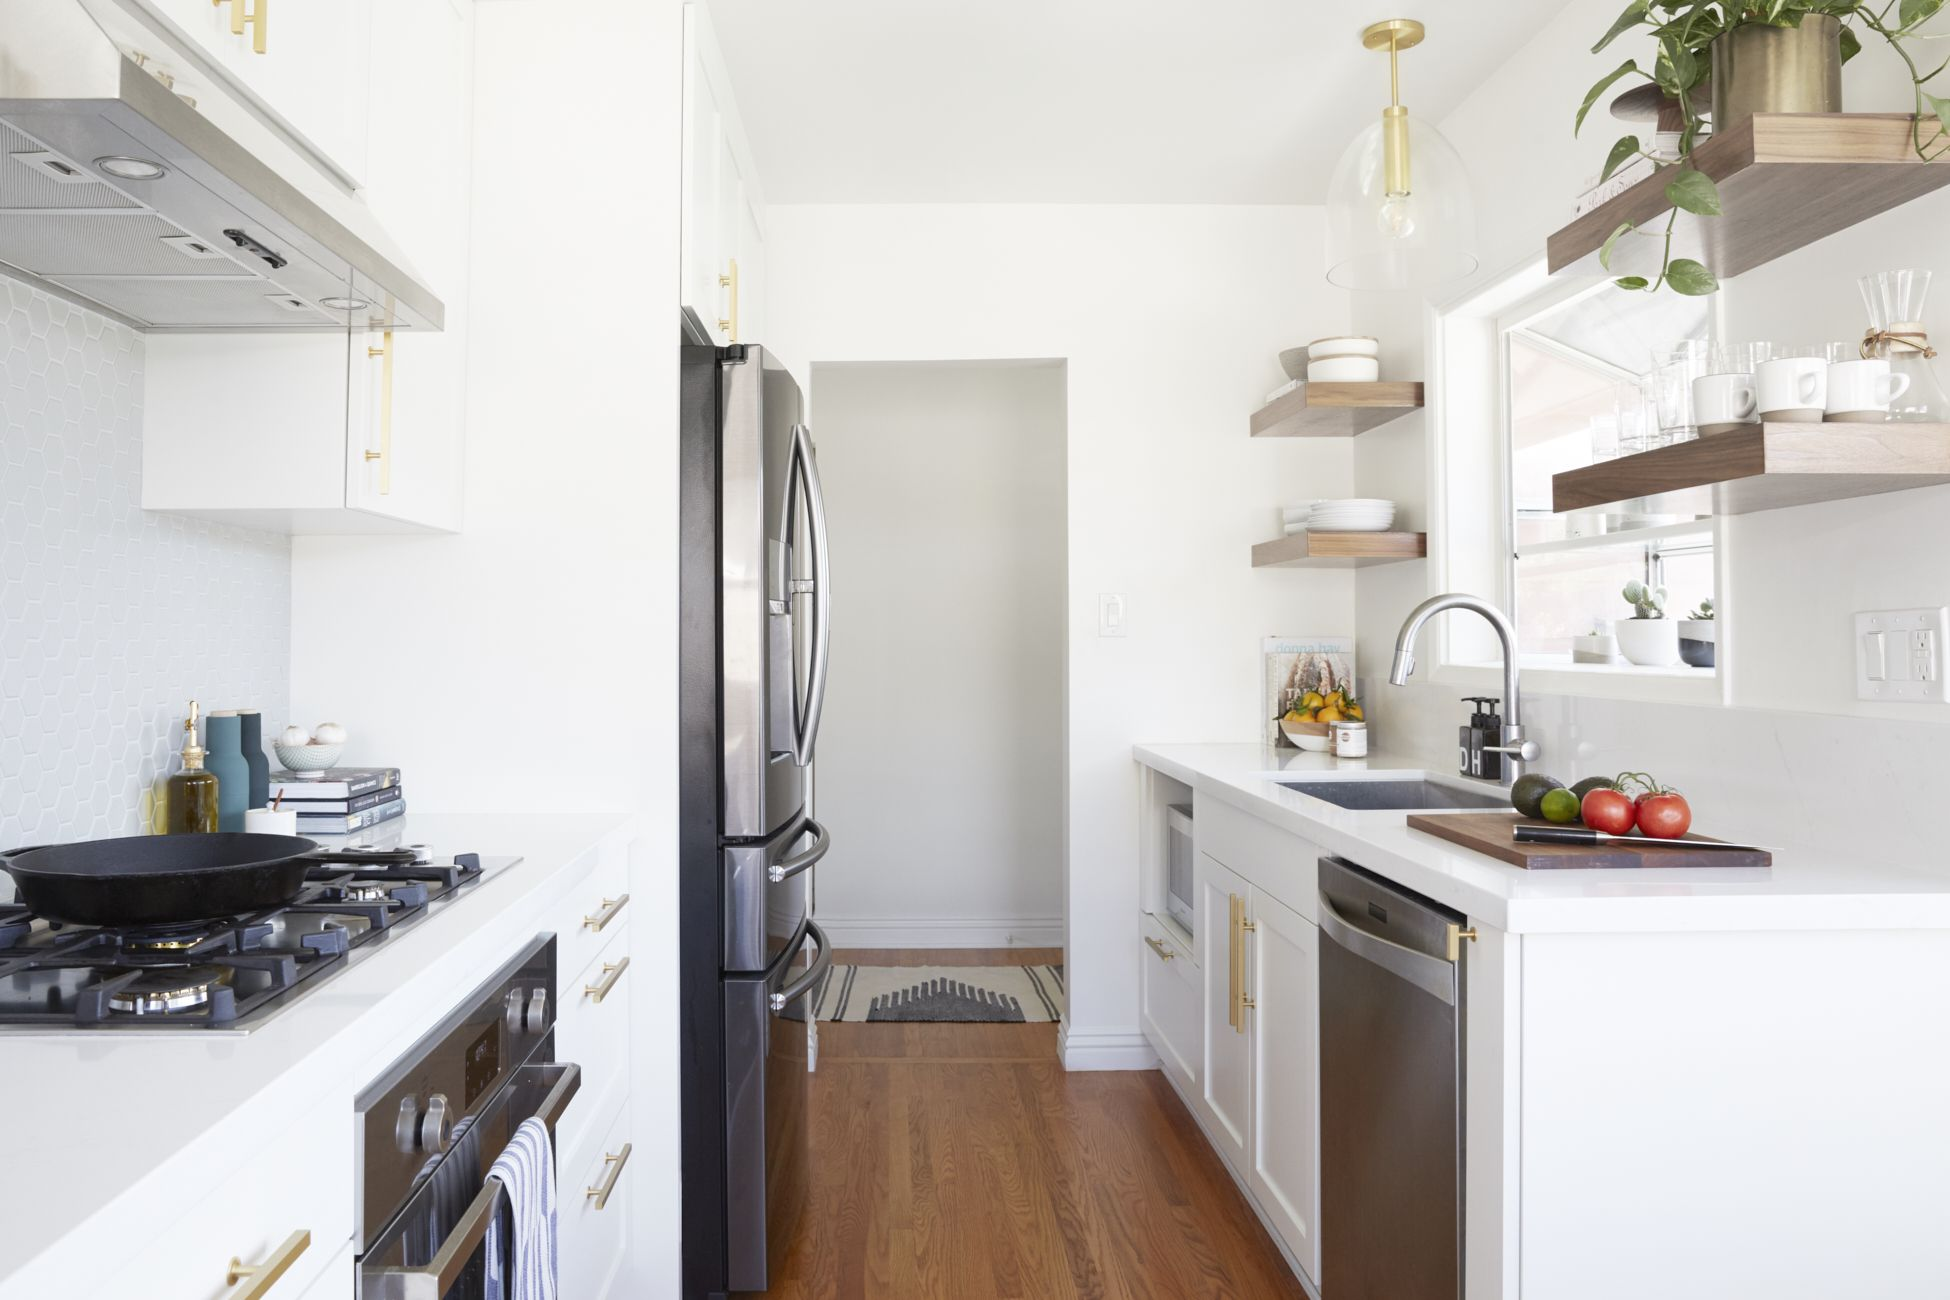 Before & After: A California Kitchen Dresses Down | Small kitchen ...